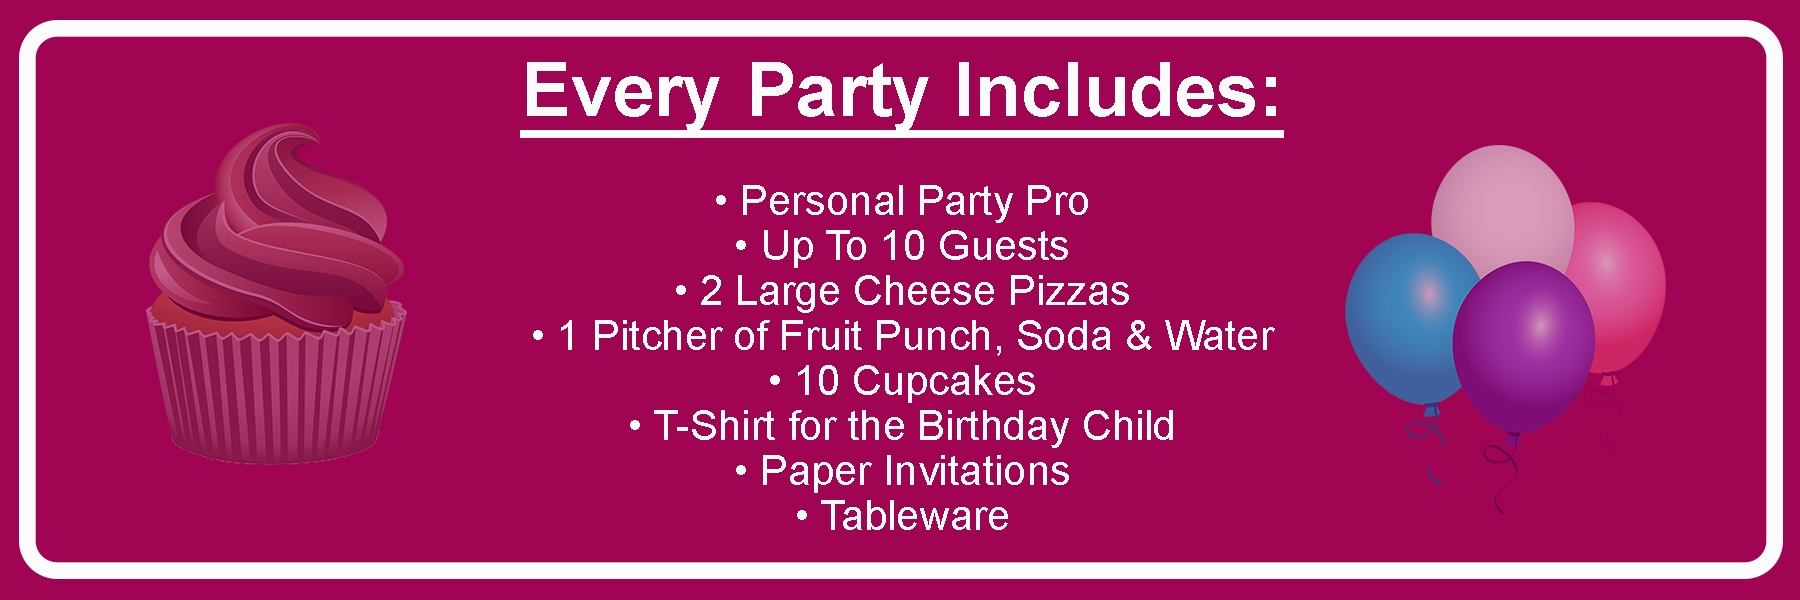 Party Includes1